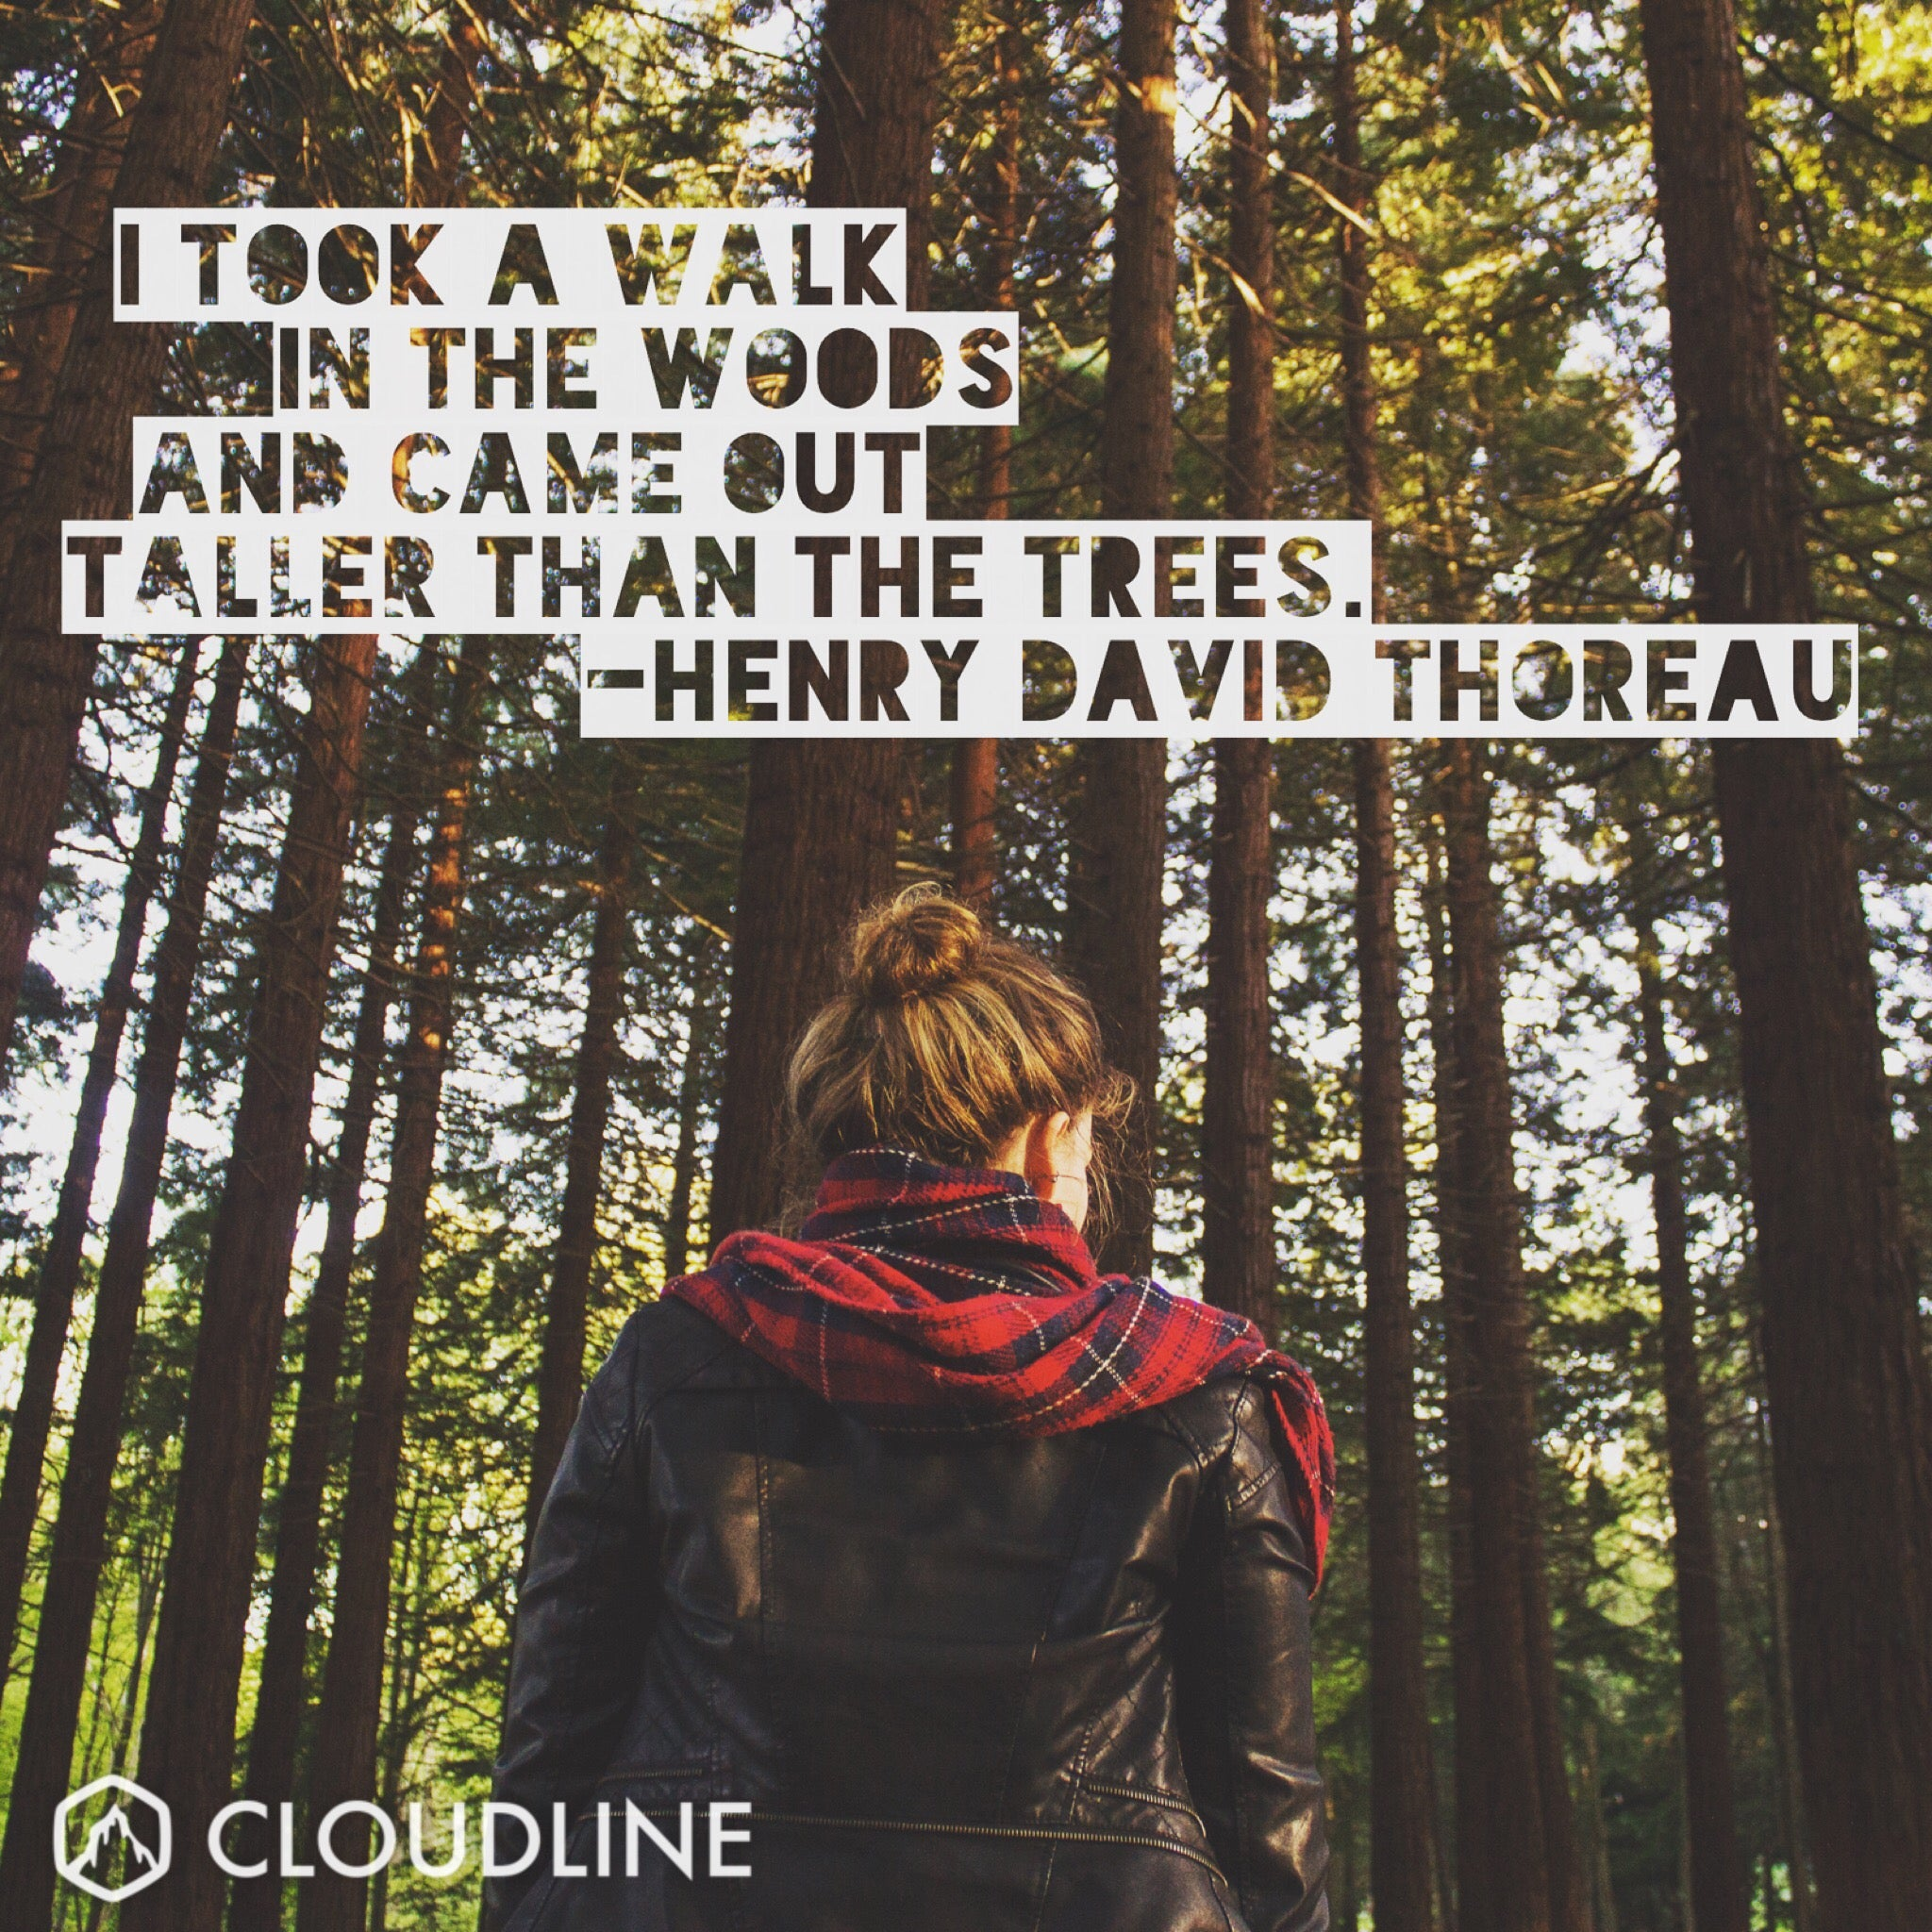 Henry David Thoreau on the Power of Nature